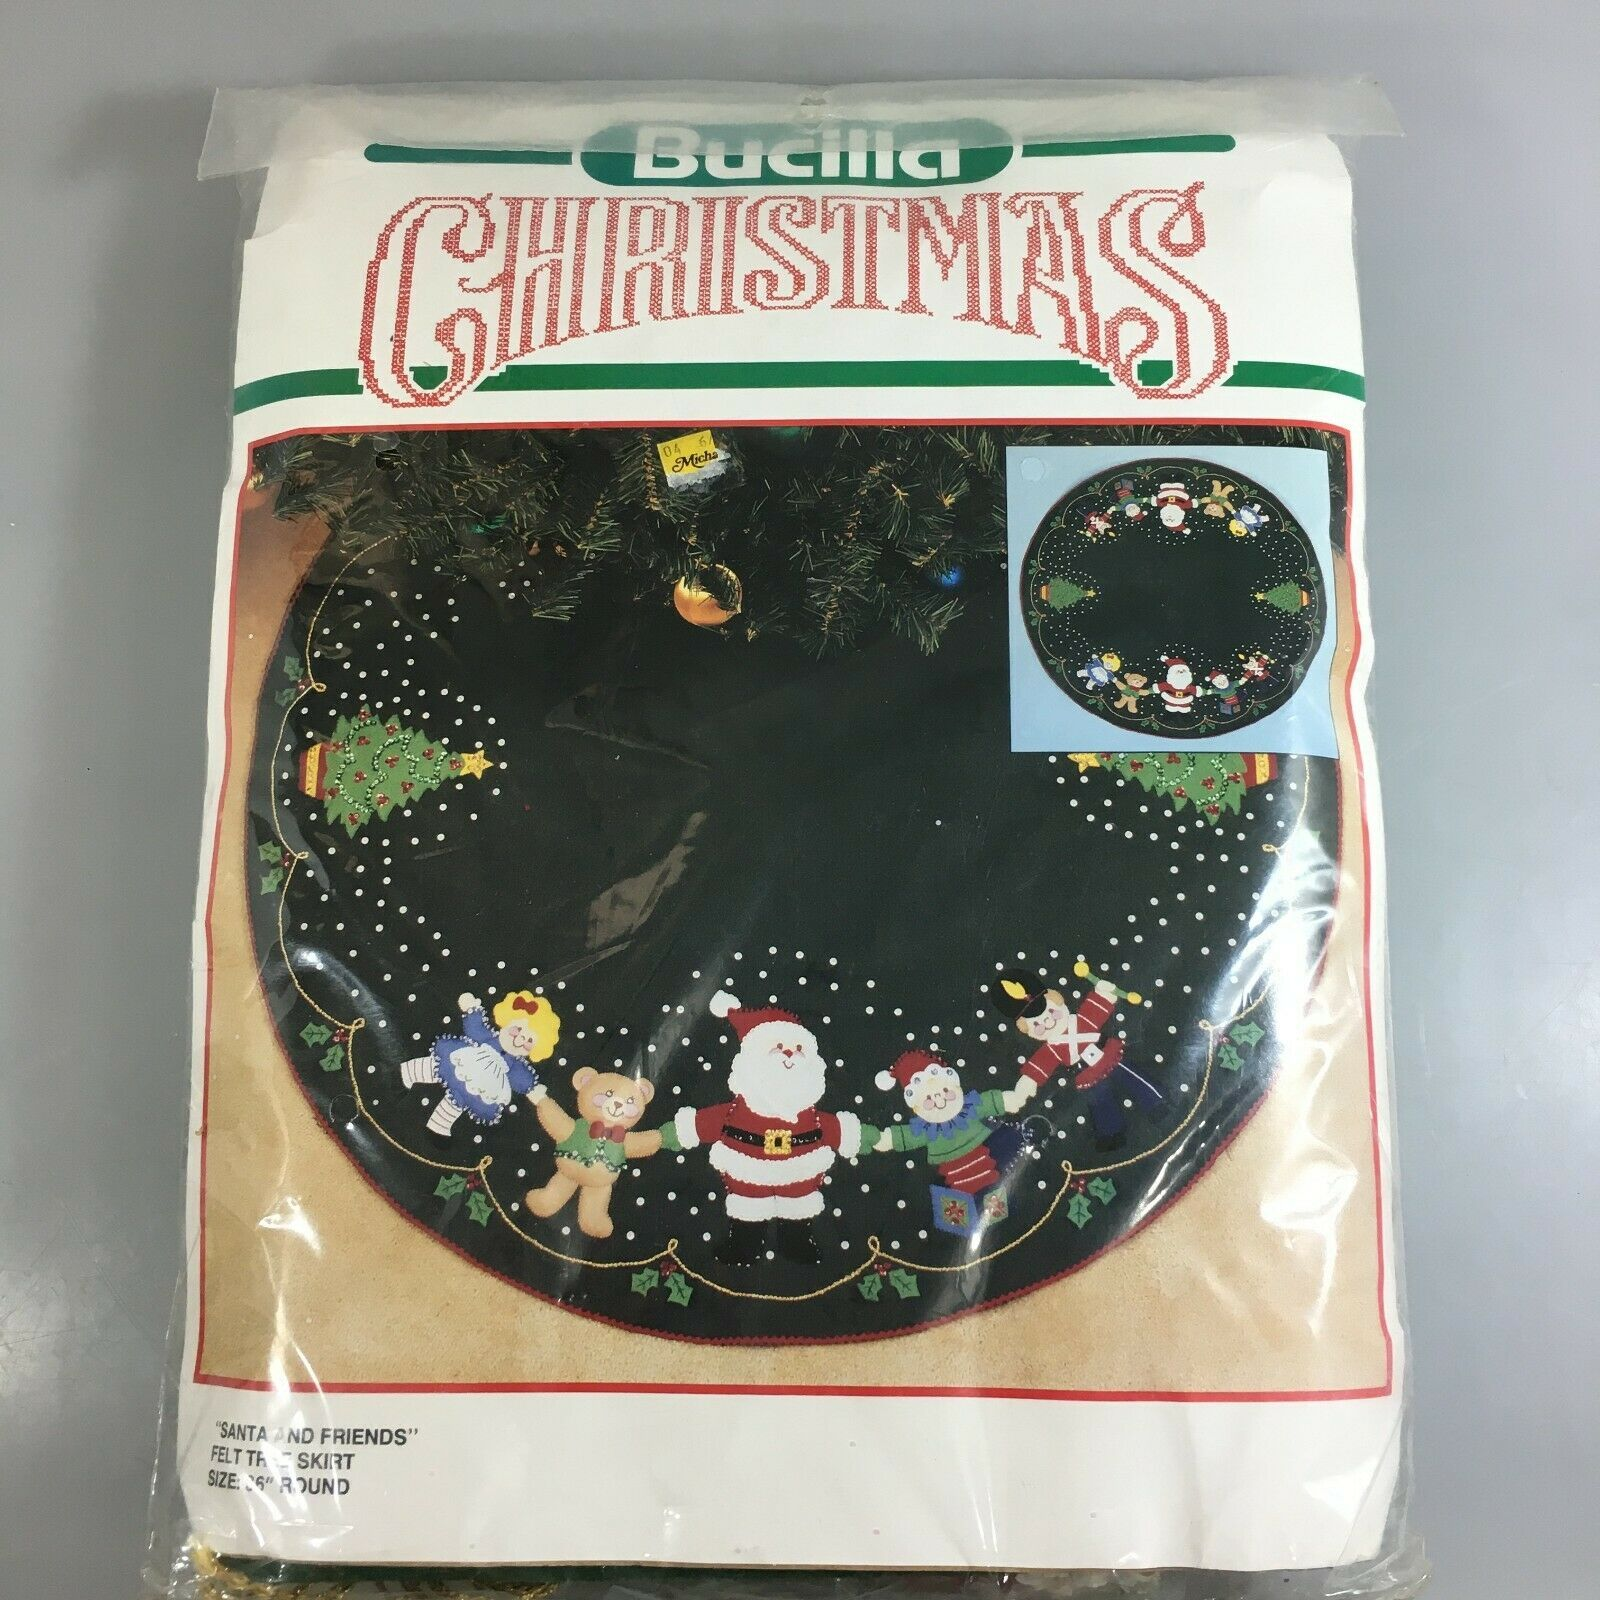 "Primary image for Bucilla Christmas Tree Felt Skirt Kit 36"" Santa and Friends 82724 USA Made"